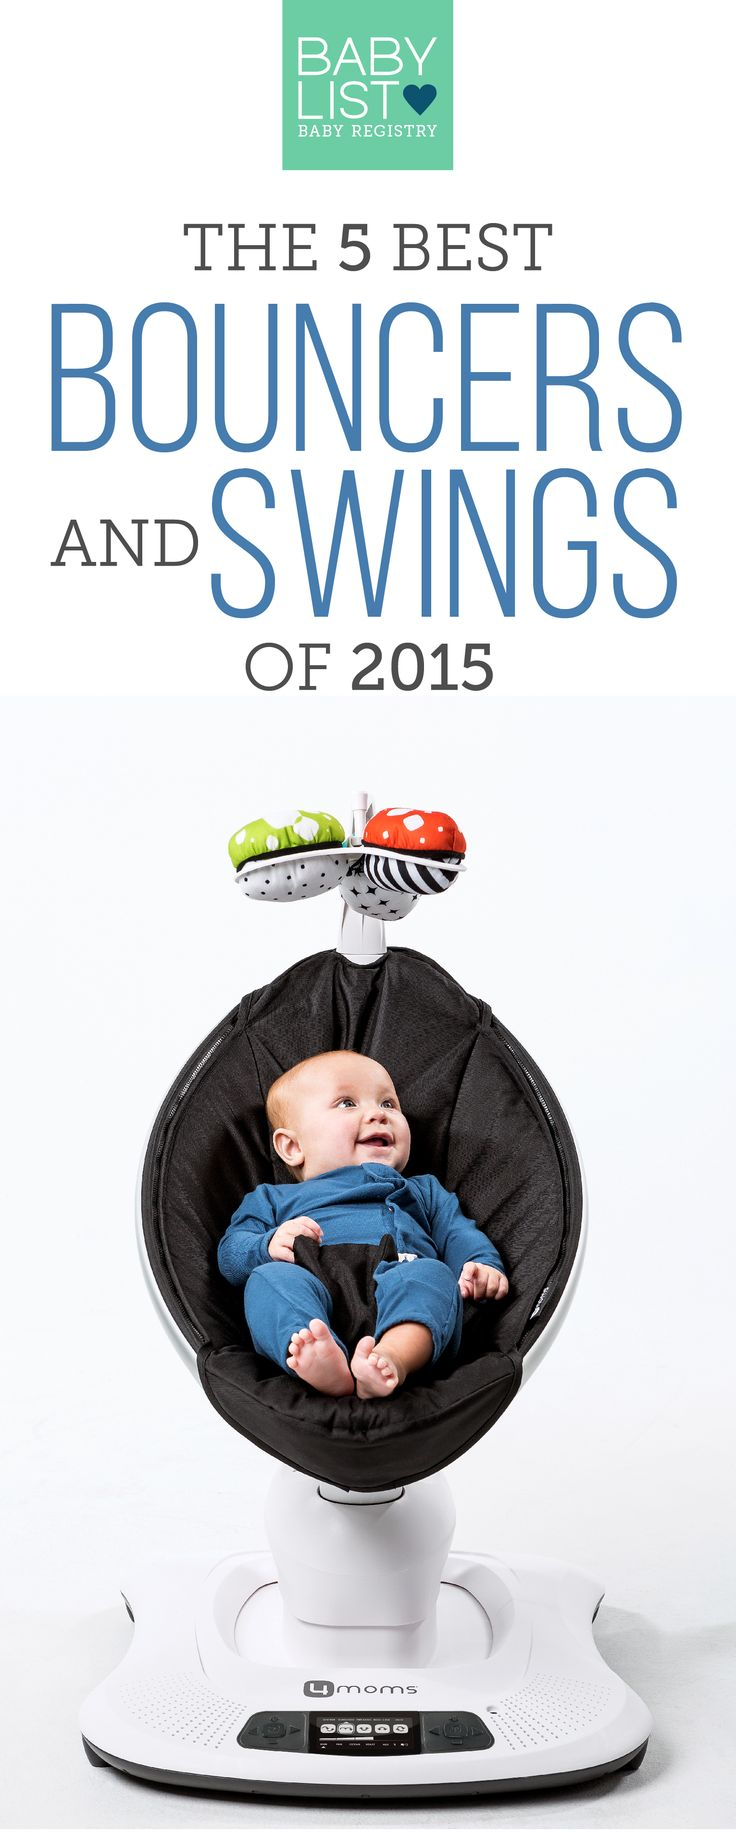 We love the 4moms mamaRoo because it has five different motions for baby- plus, it has a beautiful design. Check out the rest of our picks for the Best Bouncers & Swings of 2015!